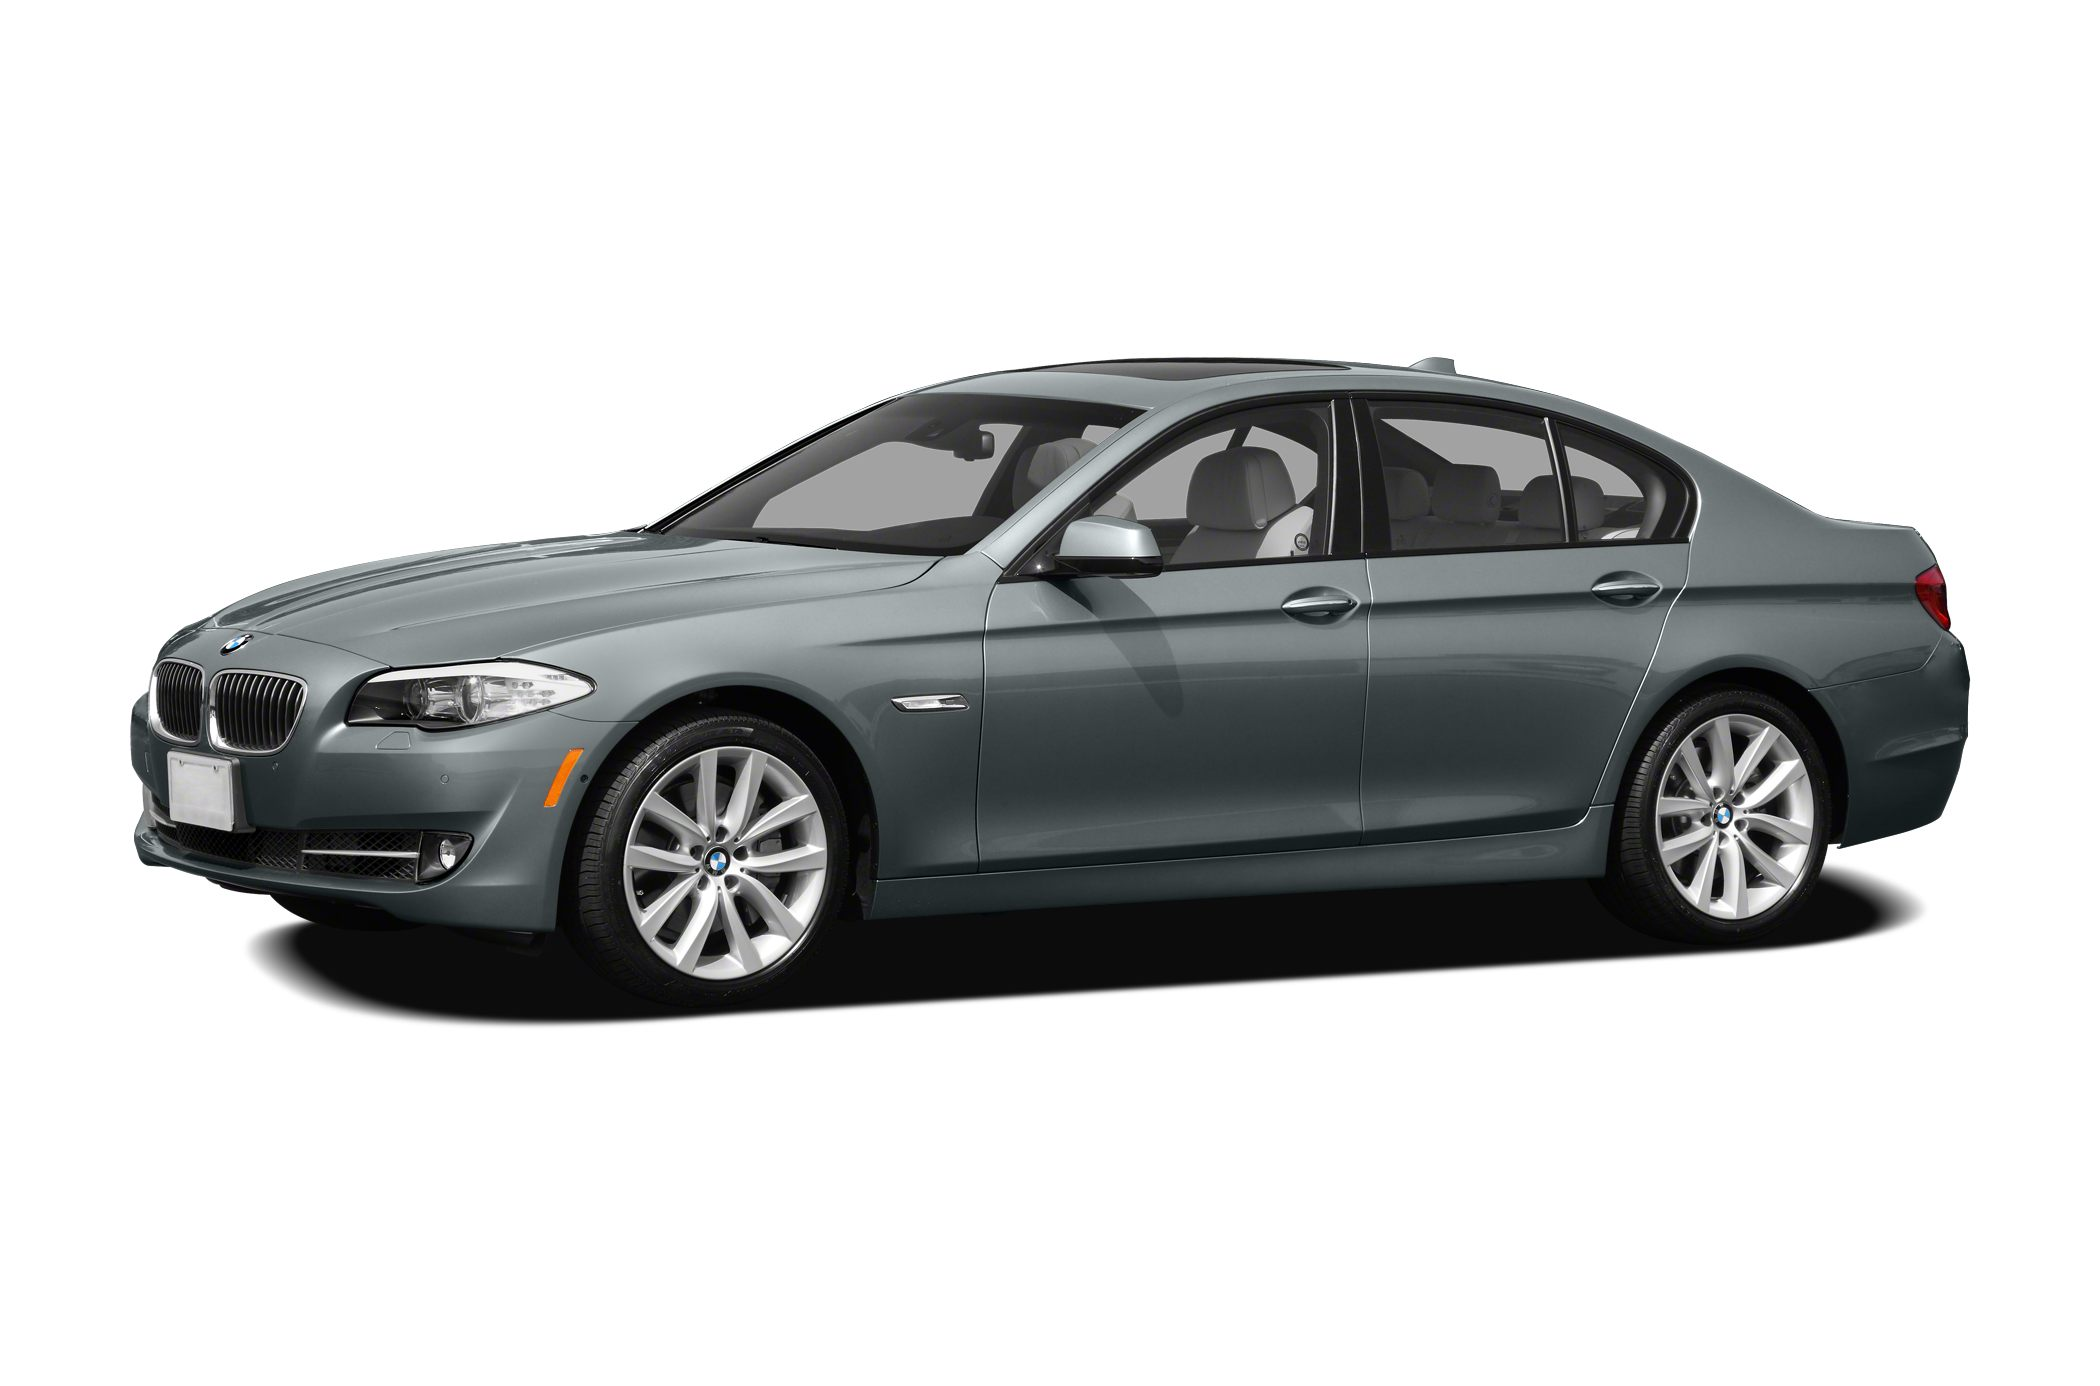 2011 BMW 550 I Sedan for sale in New York for $31,995 with 46,700 miles.